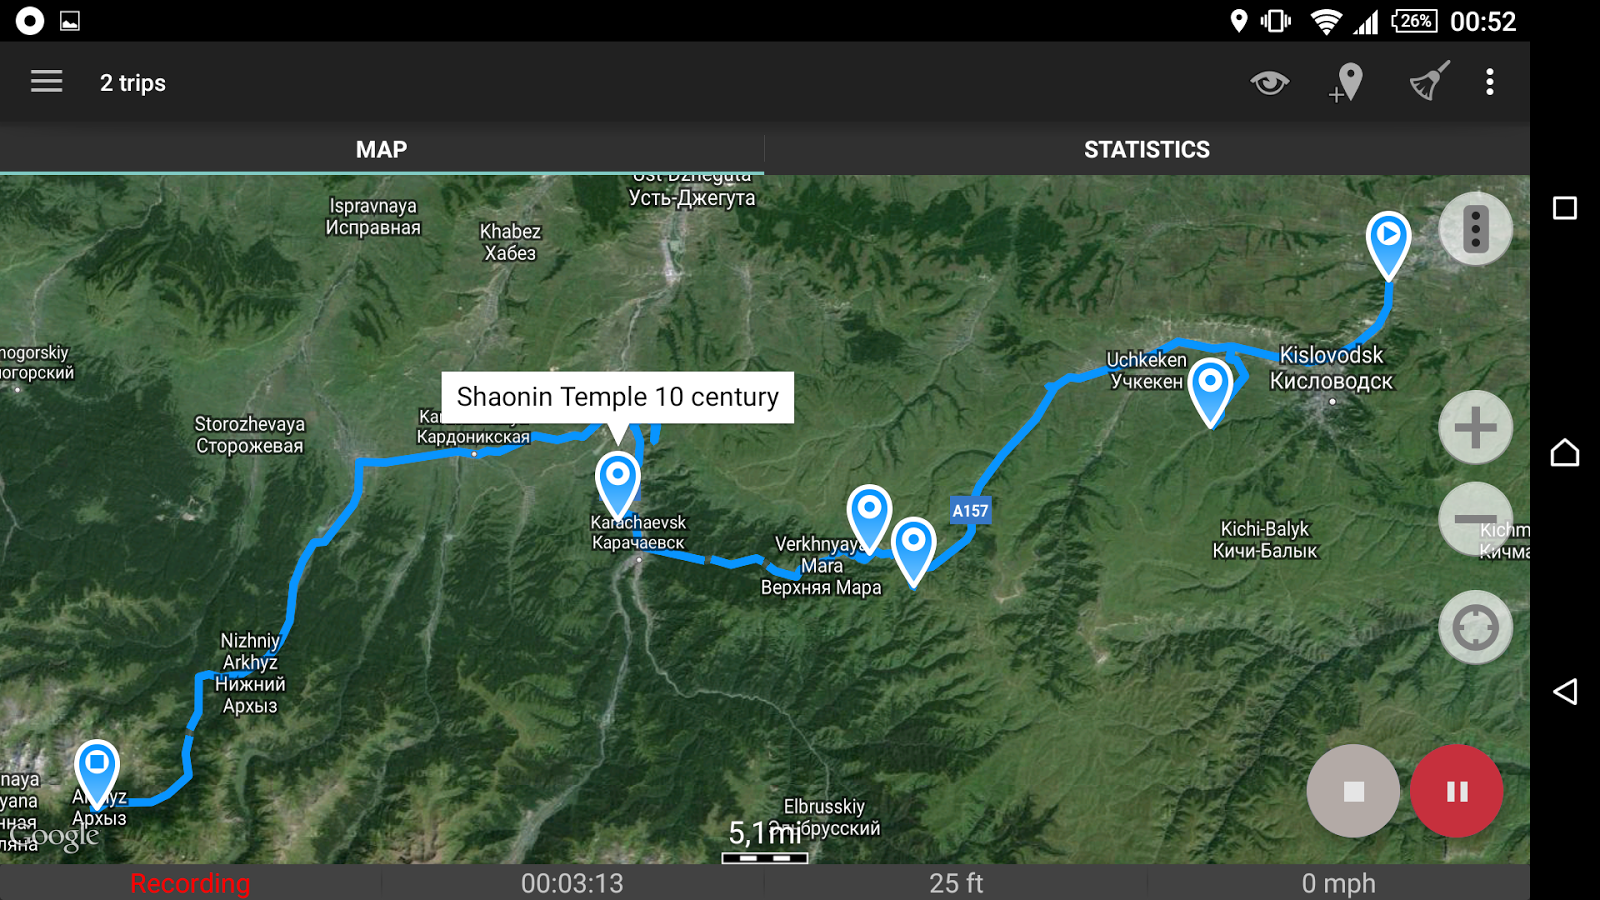 Geo Tracker GPS tracker Android Apps on Google Play – Track My Travels Map